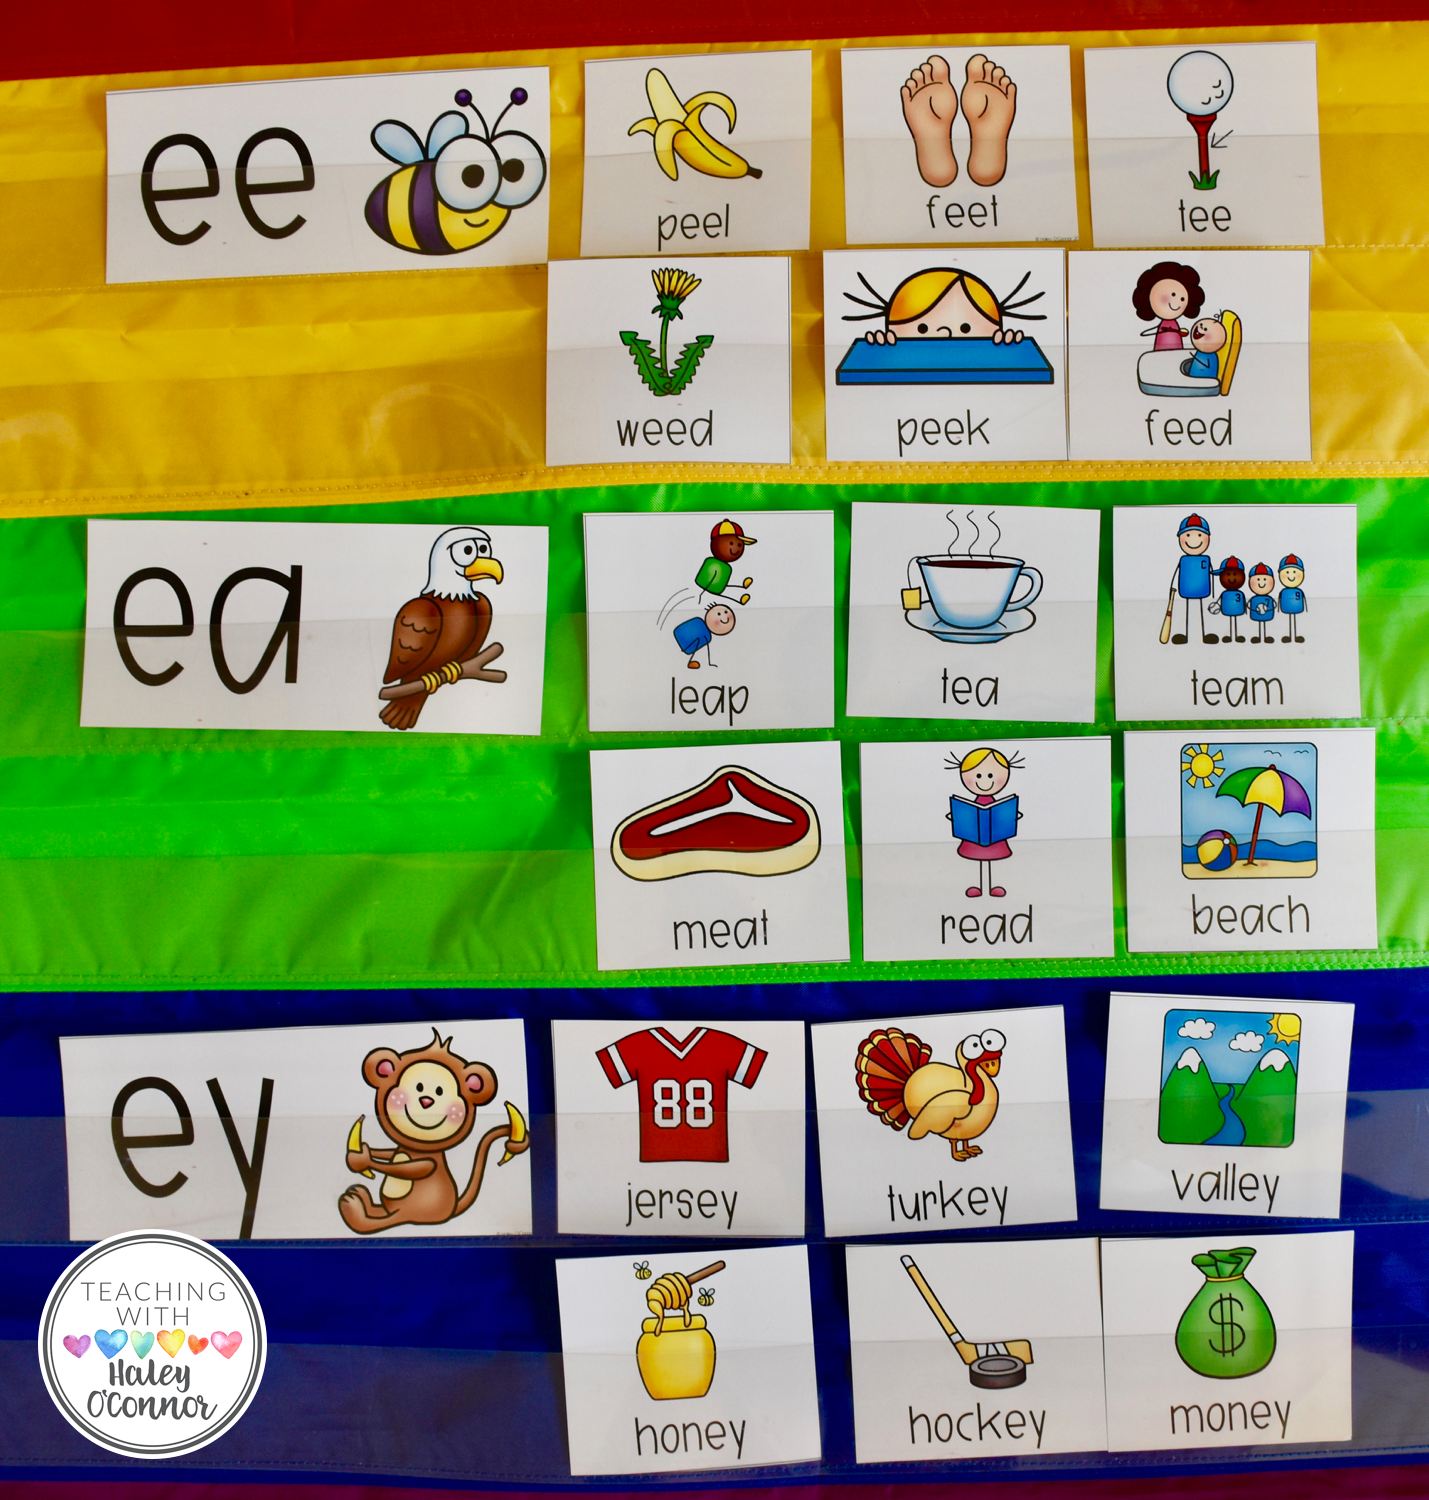 Sorts For Teaching Vowel Teams Word Sort Of Ea Ee And Ey Sounds Of Long E